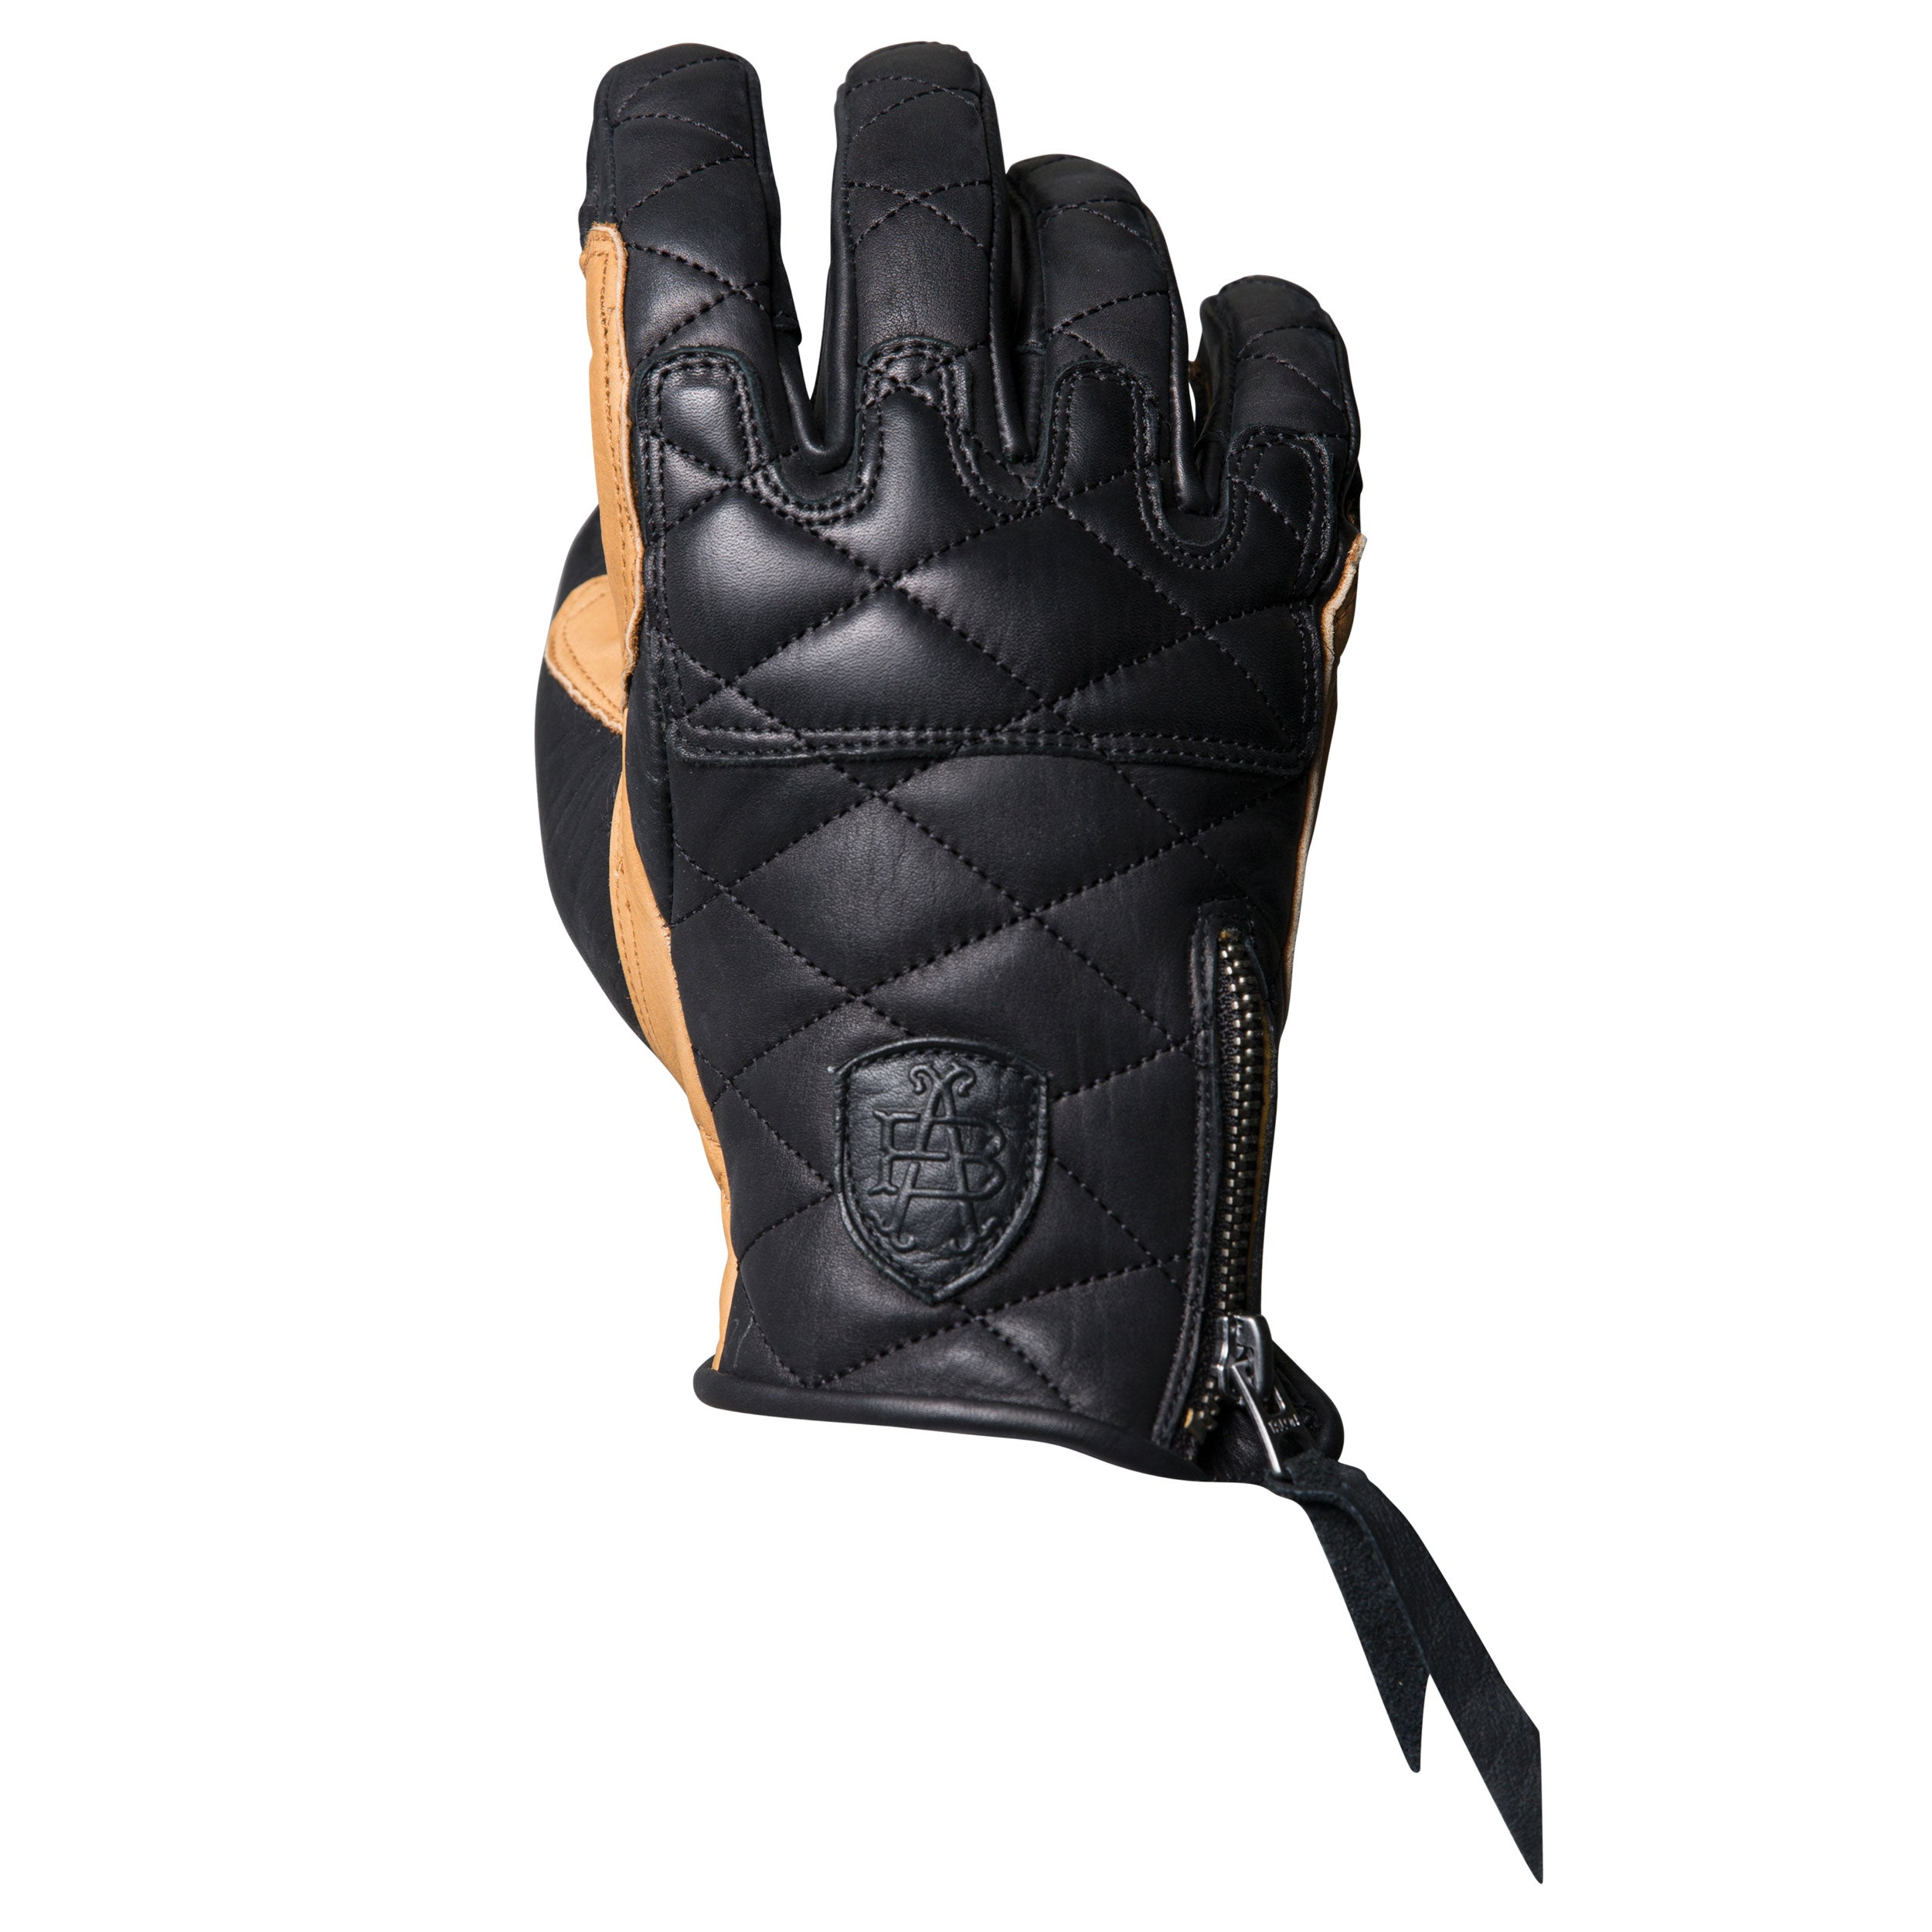 Duster black and tan heritage leather motorcycle glove made with the spirit of iconic desert motorcross racing, this is the back of hand view, and could be worn on motox, chopper riding, cafe racer, tracker, brat style, or adventure bike